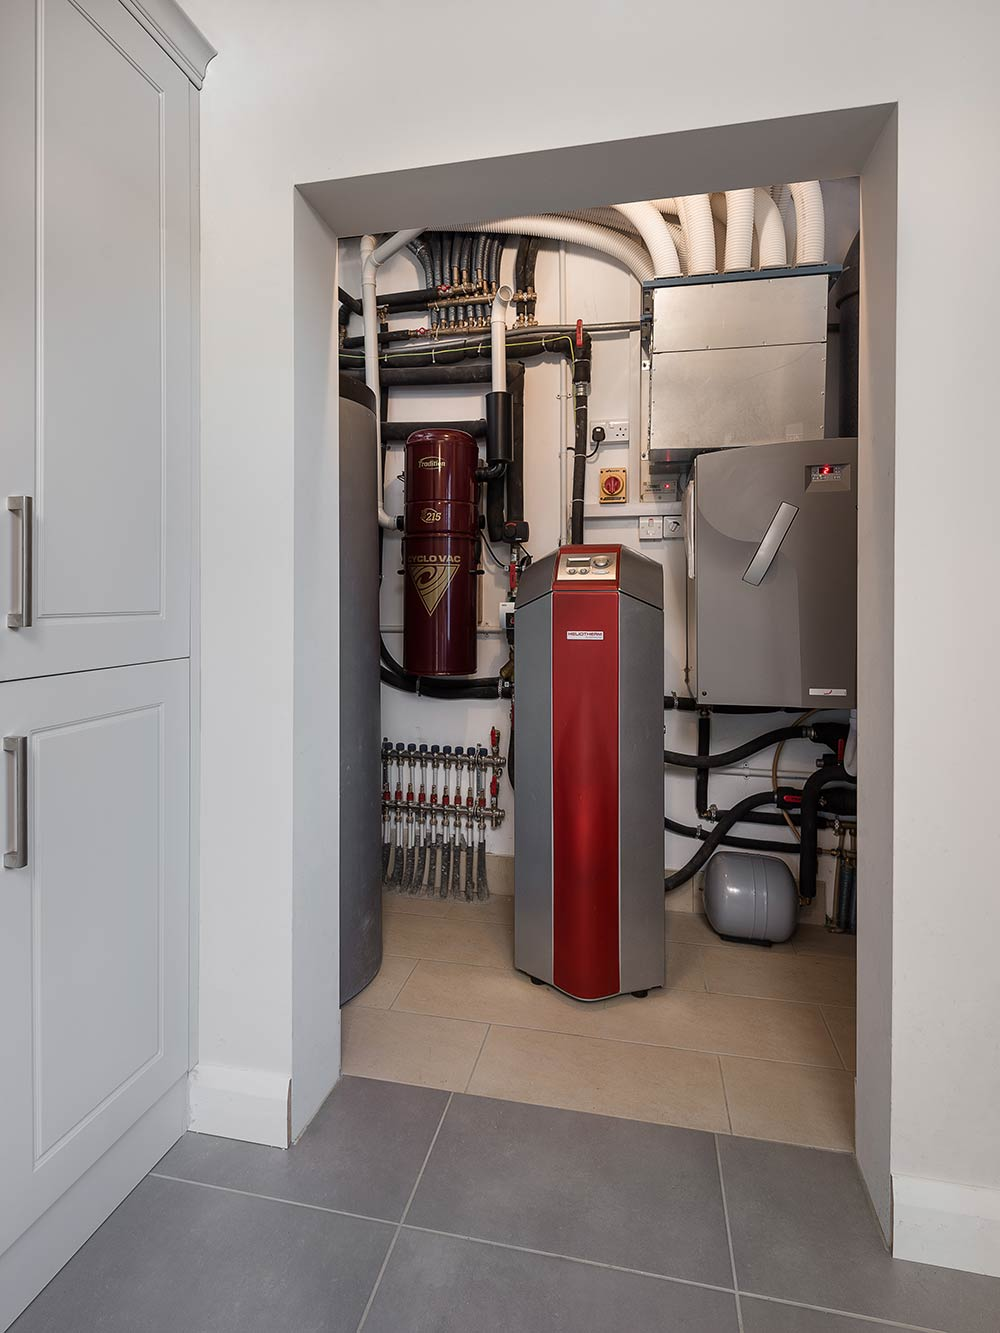 The house's utility space includes the Zehnder Comfoair 550 heat recovery ventilation system, the Heliotherm brine-to-water heat pump that supplies underfloor heating on both floors, and a 500 litre domestic hot water tank with fresh hot water heat exchanger.